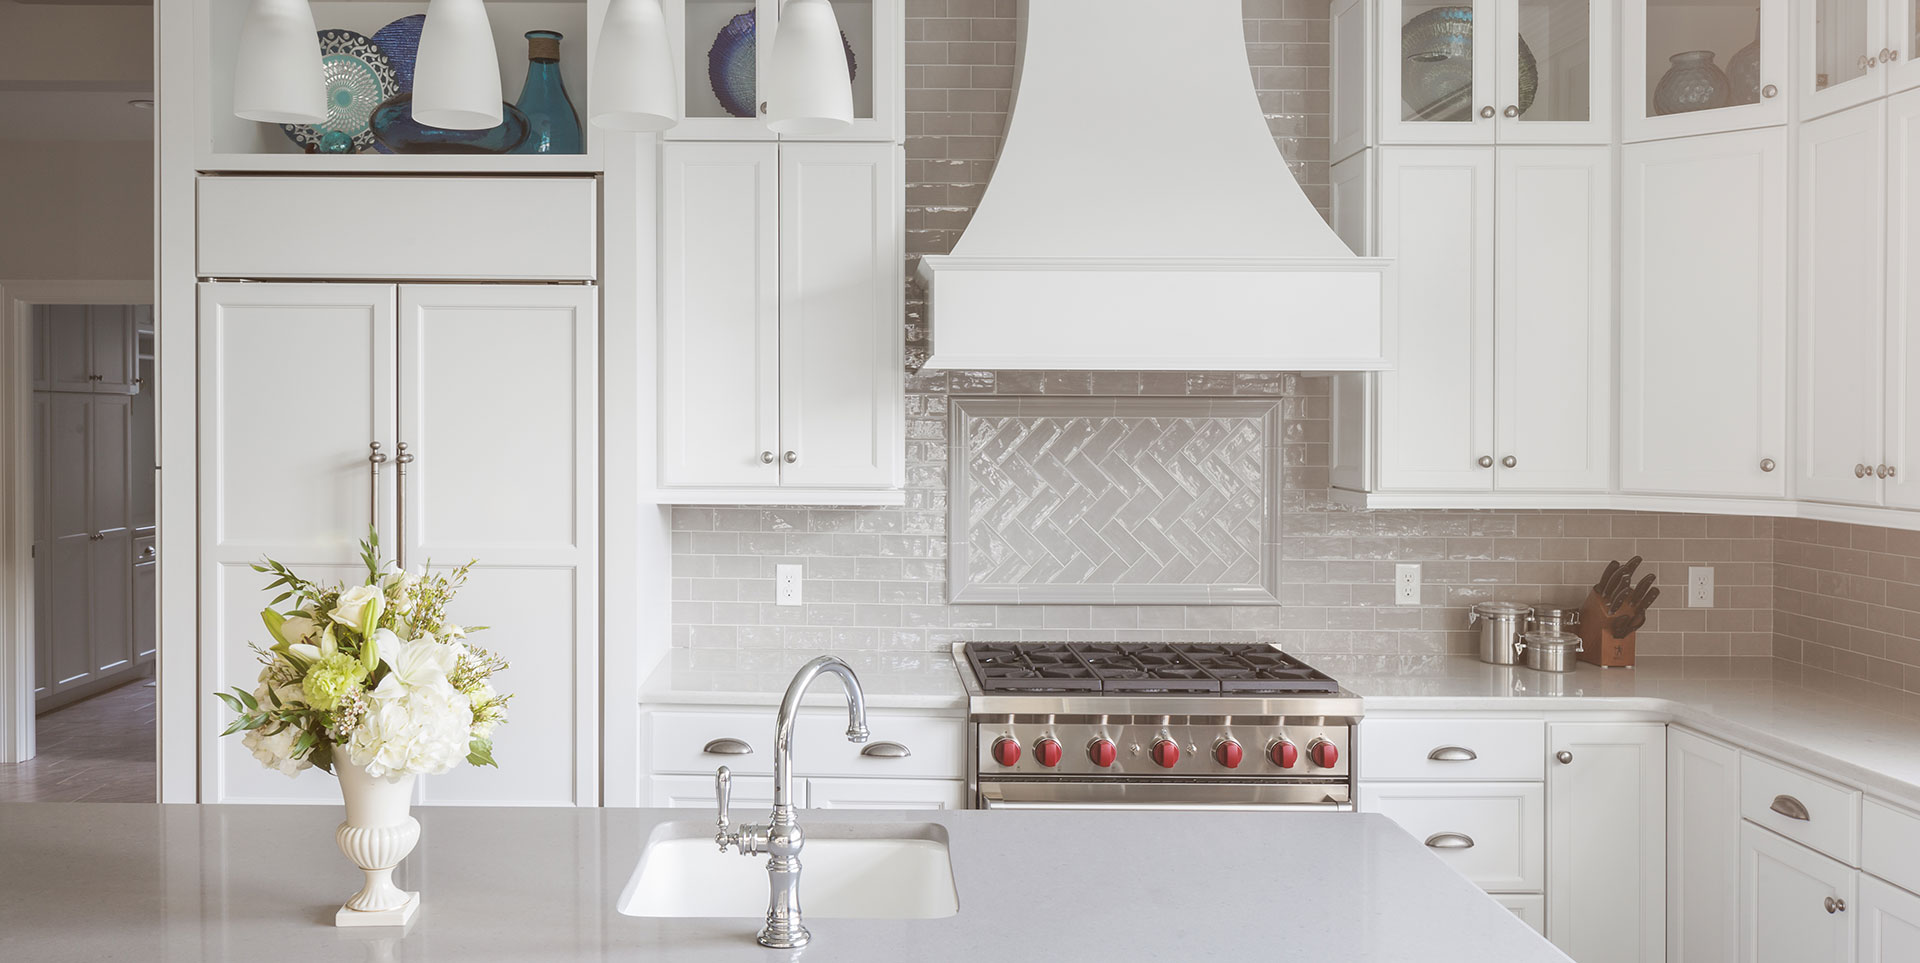 kitchen bath gallery design showrooms remodeling ma ri ct clean white traditional subway tile kitchen bath gallery ma ri ct